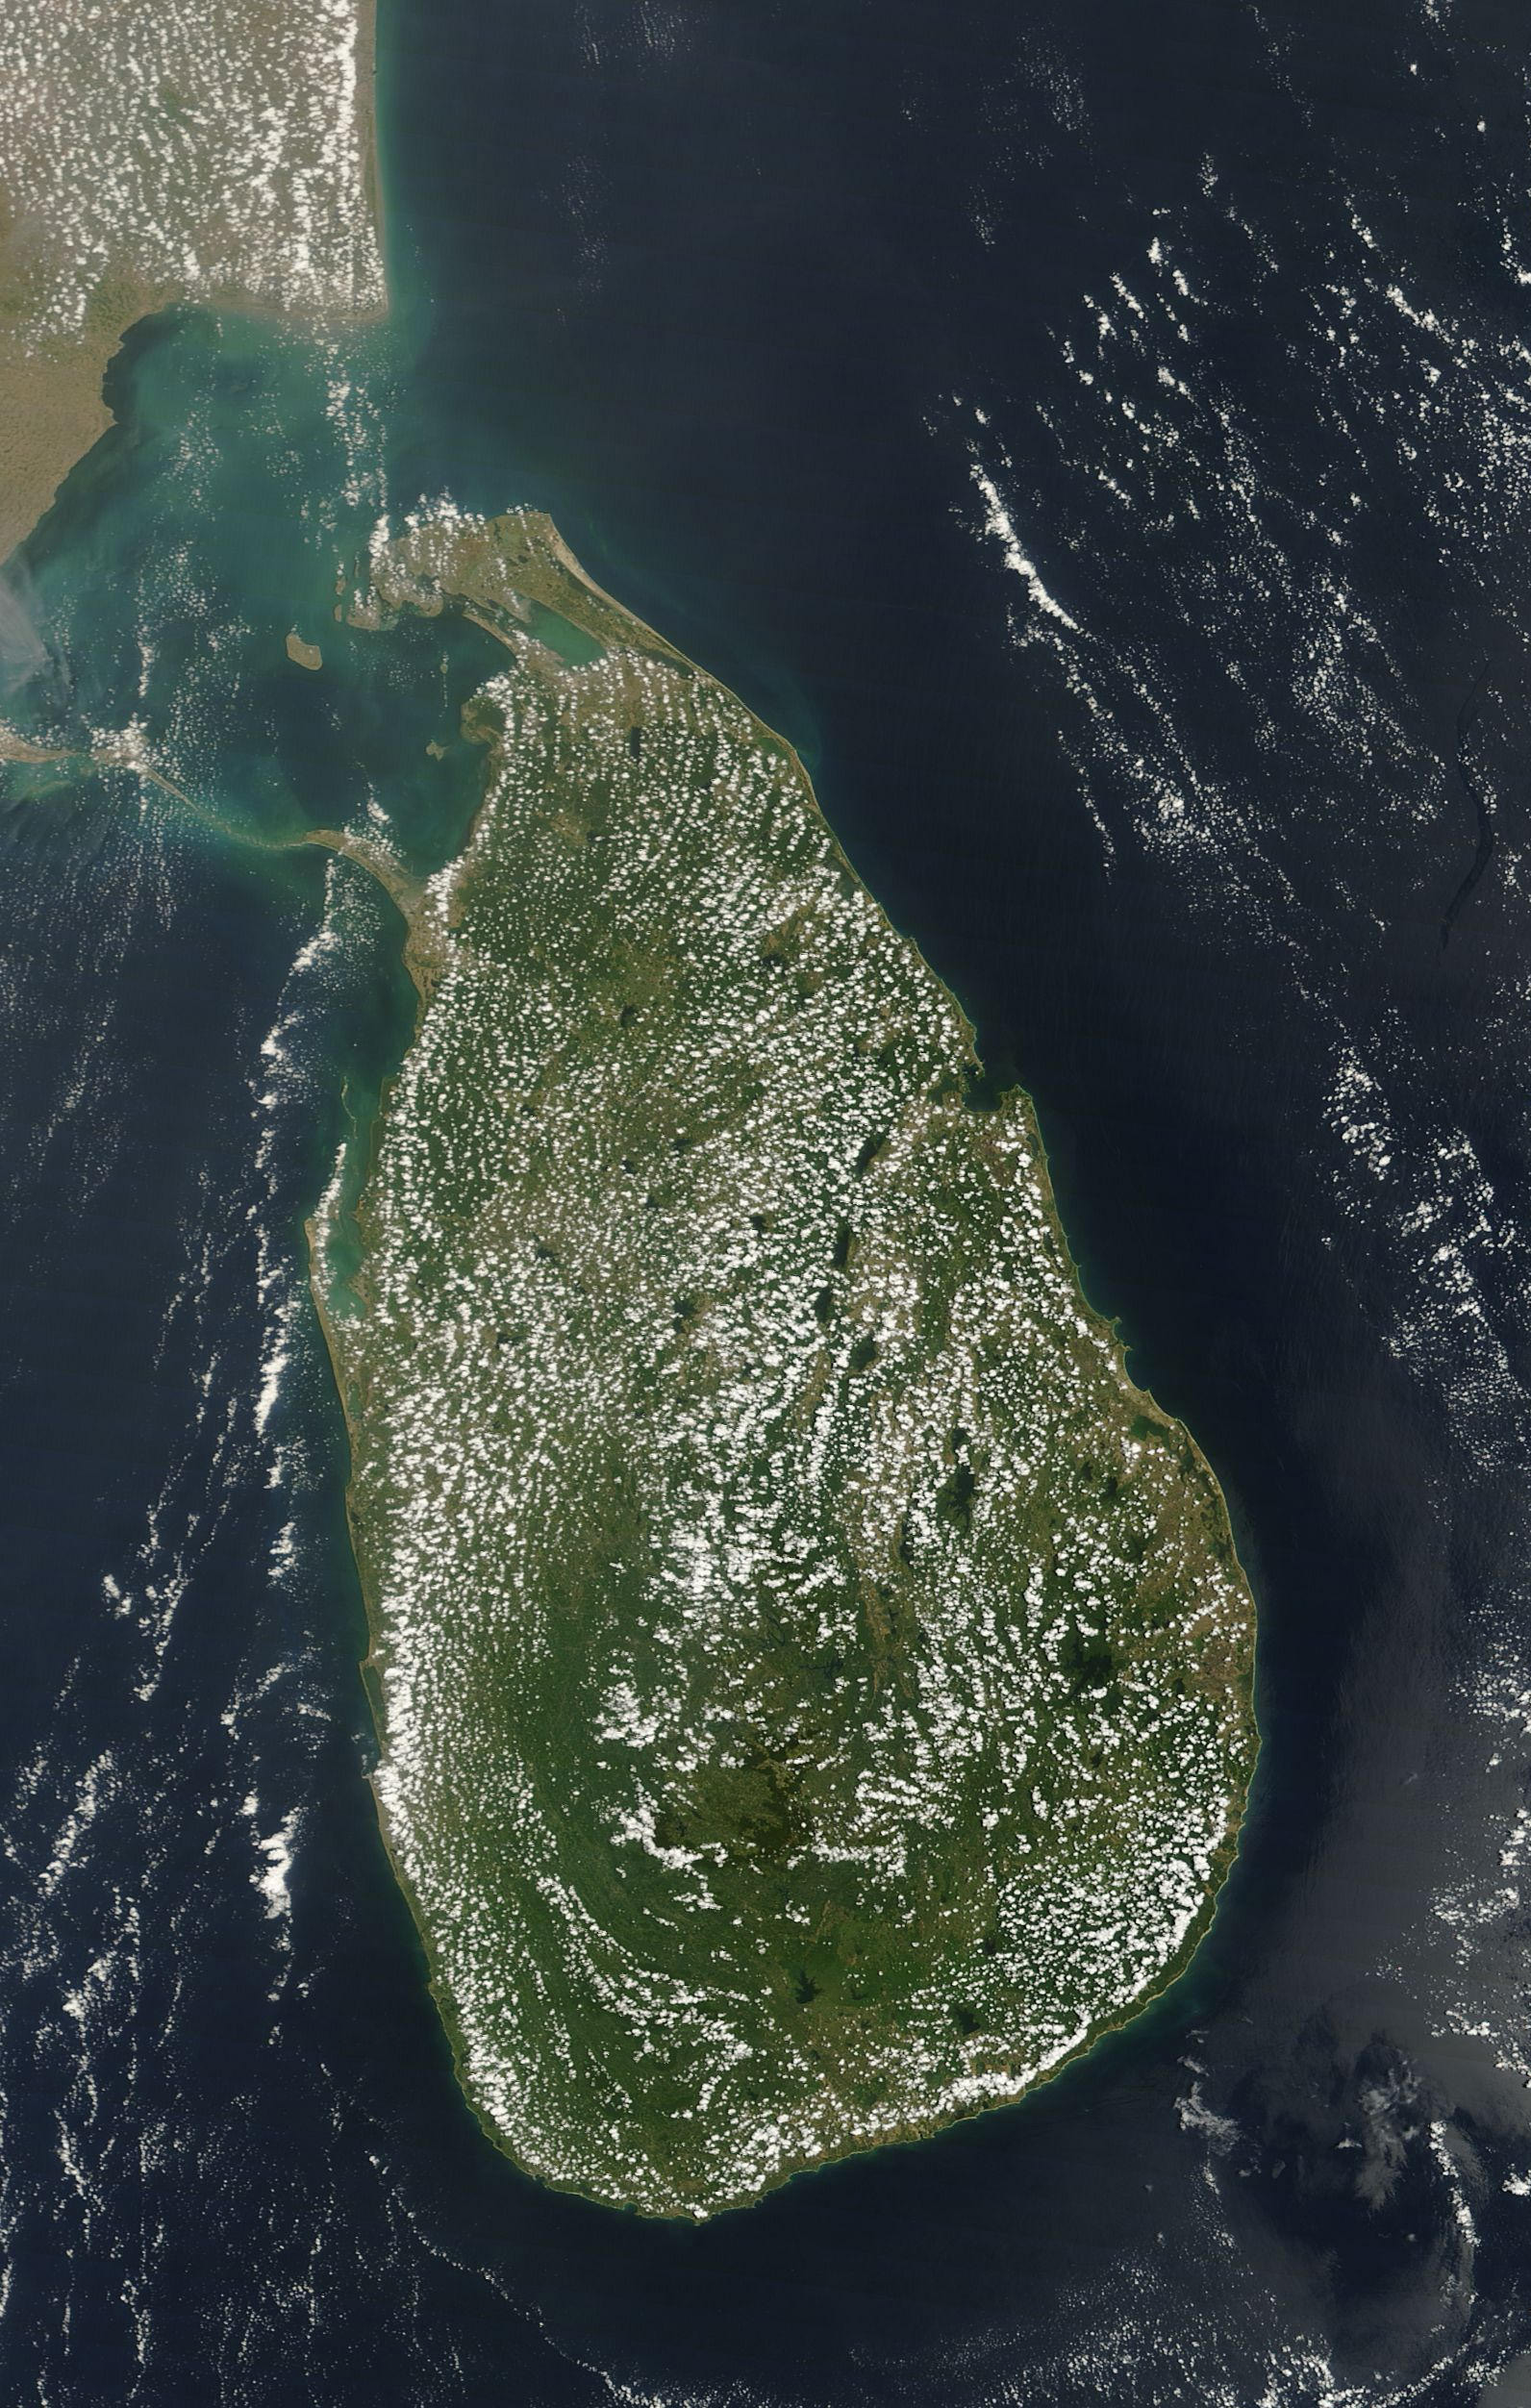 Today's Image of the Day comes thanks to the NASA Earth Observatory and features a look at fair-weather cumulus clouds over Sri Lanka.